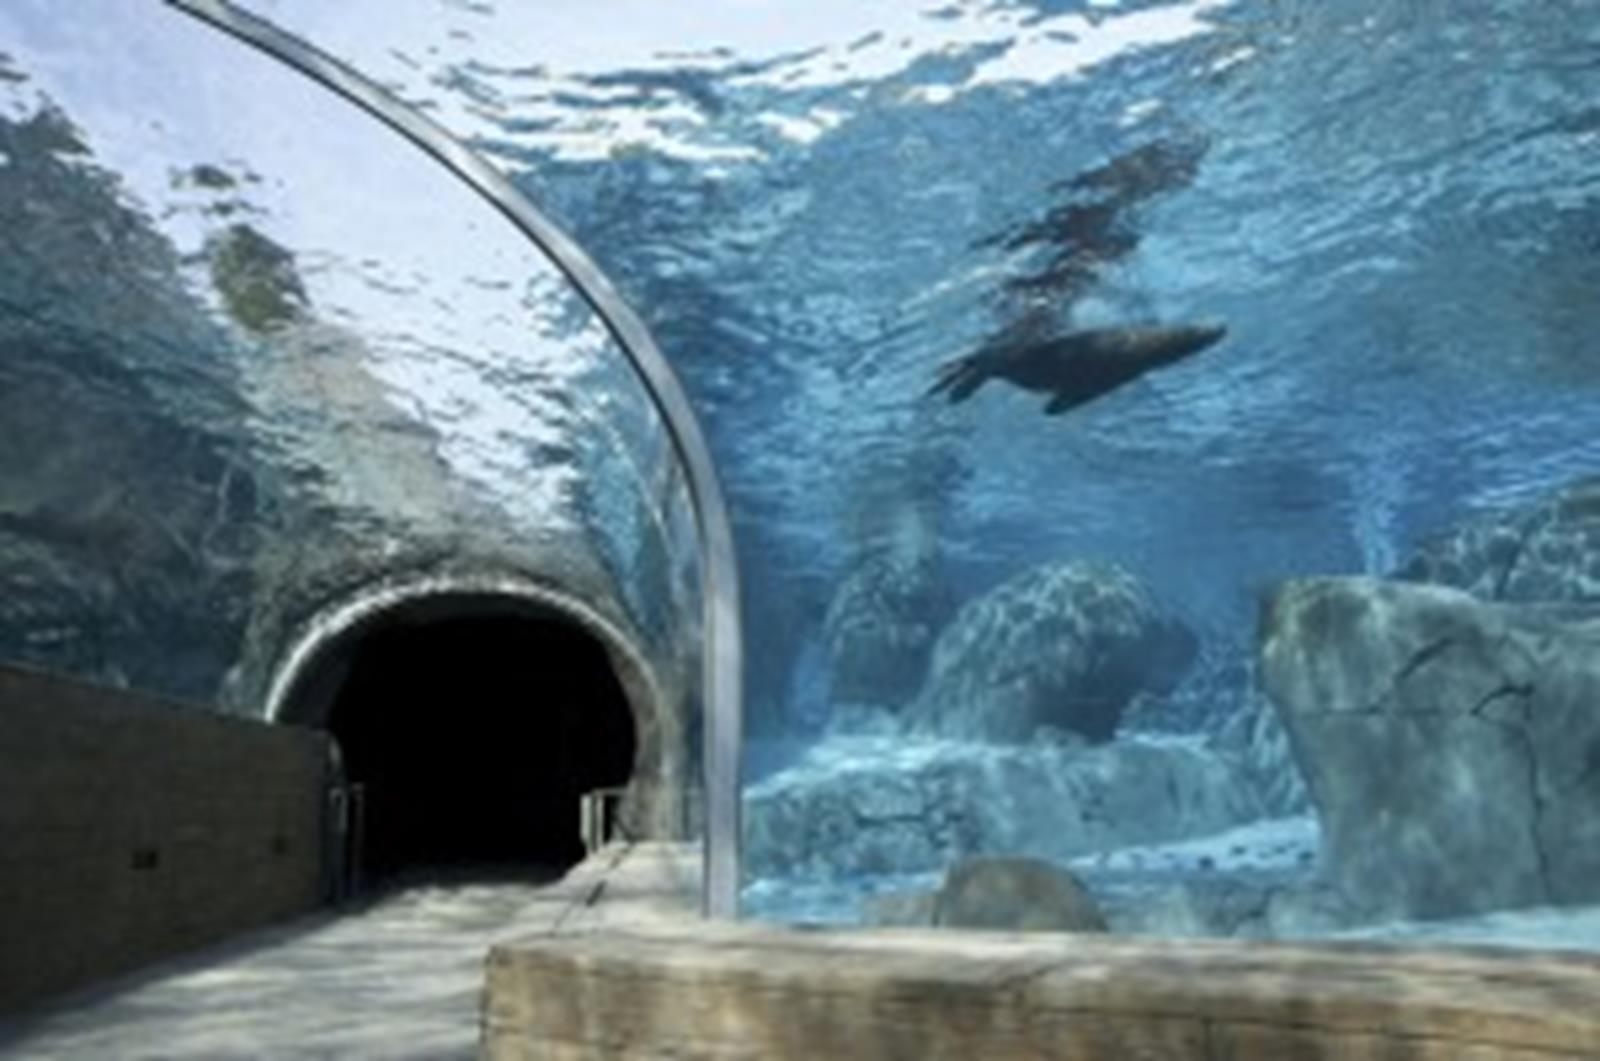 Sea Lion Sound Tunnel St. Louis Zoo Photo Courtesy of David Merritt St. Louis Zoo